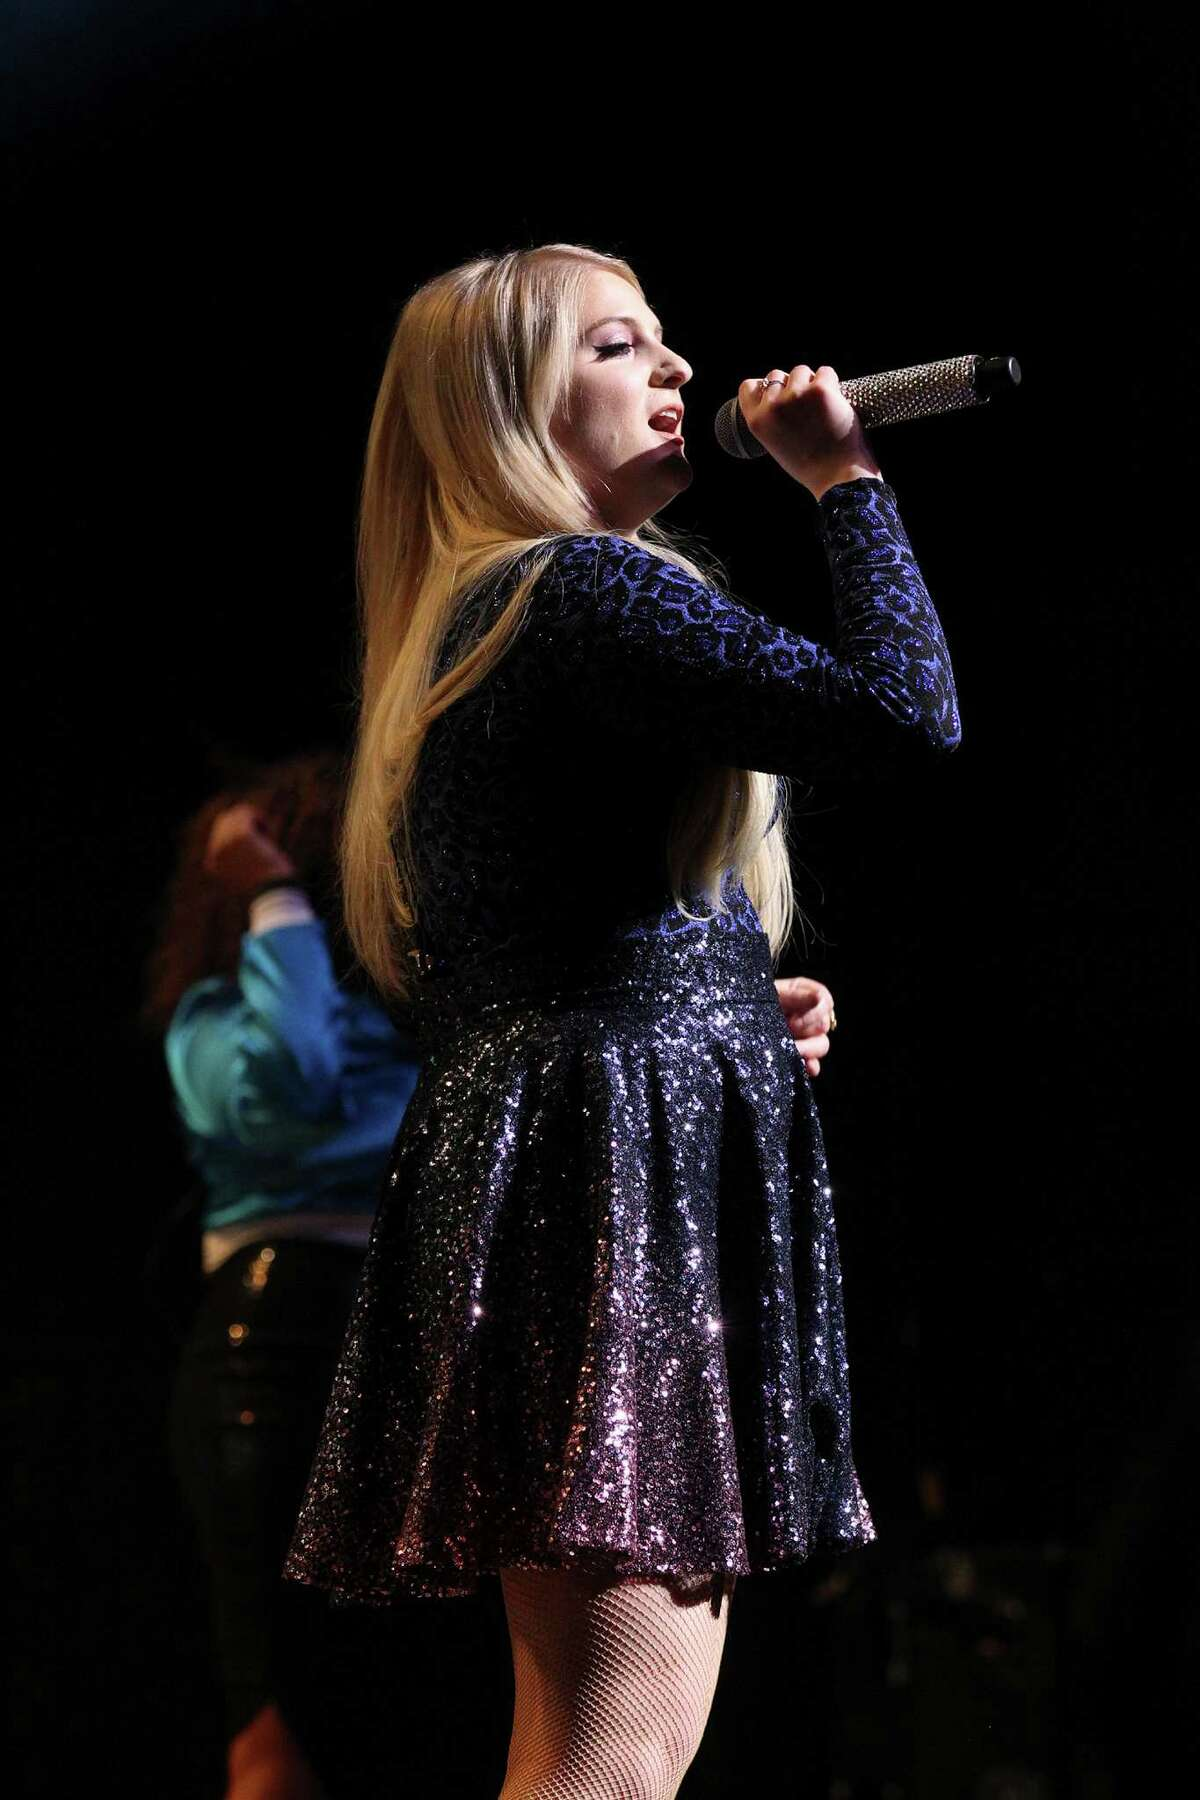 Grammy-nominated singer Meghan Trainor performs for a packed house at Tobin Center for the Performing Arts on Thursday, July 16, 2015. The 21-year-old pop singer rose to fame when she released the single